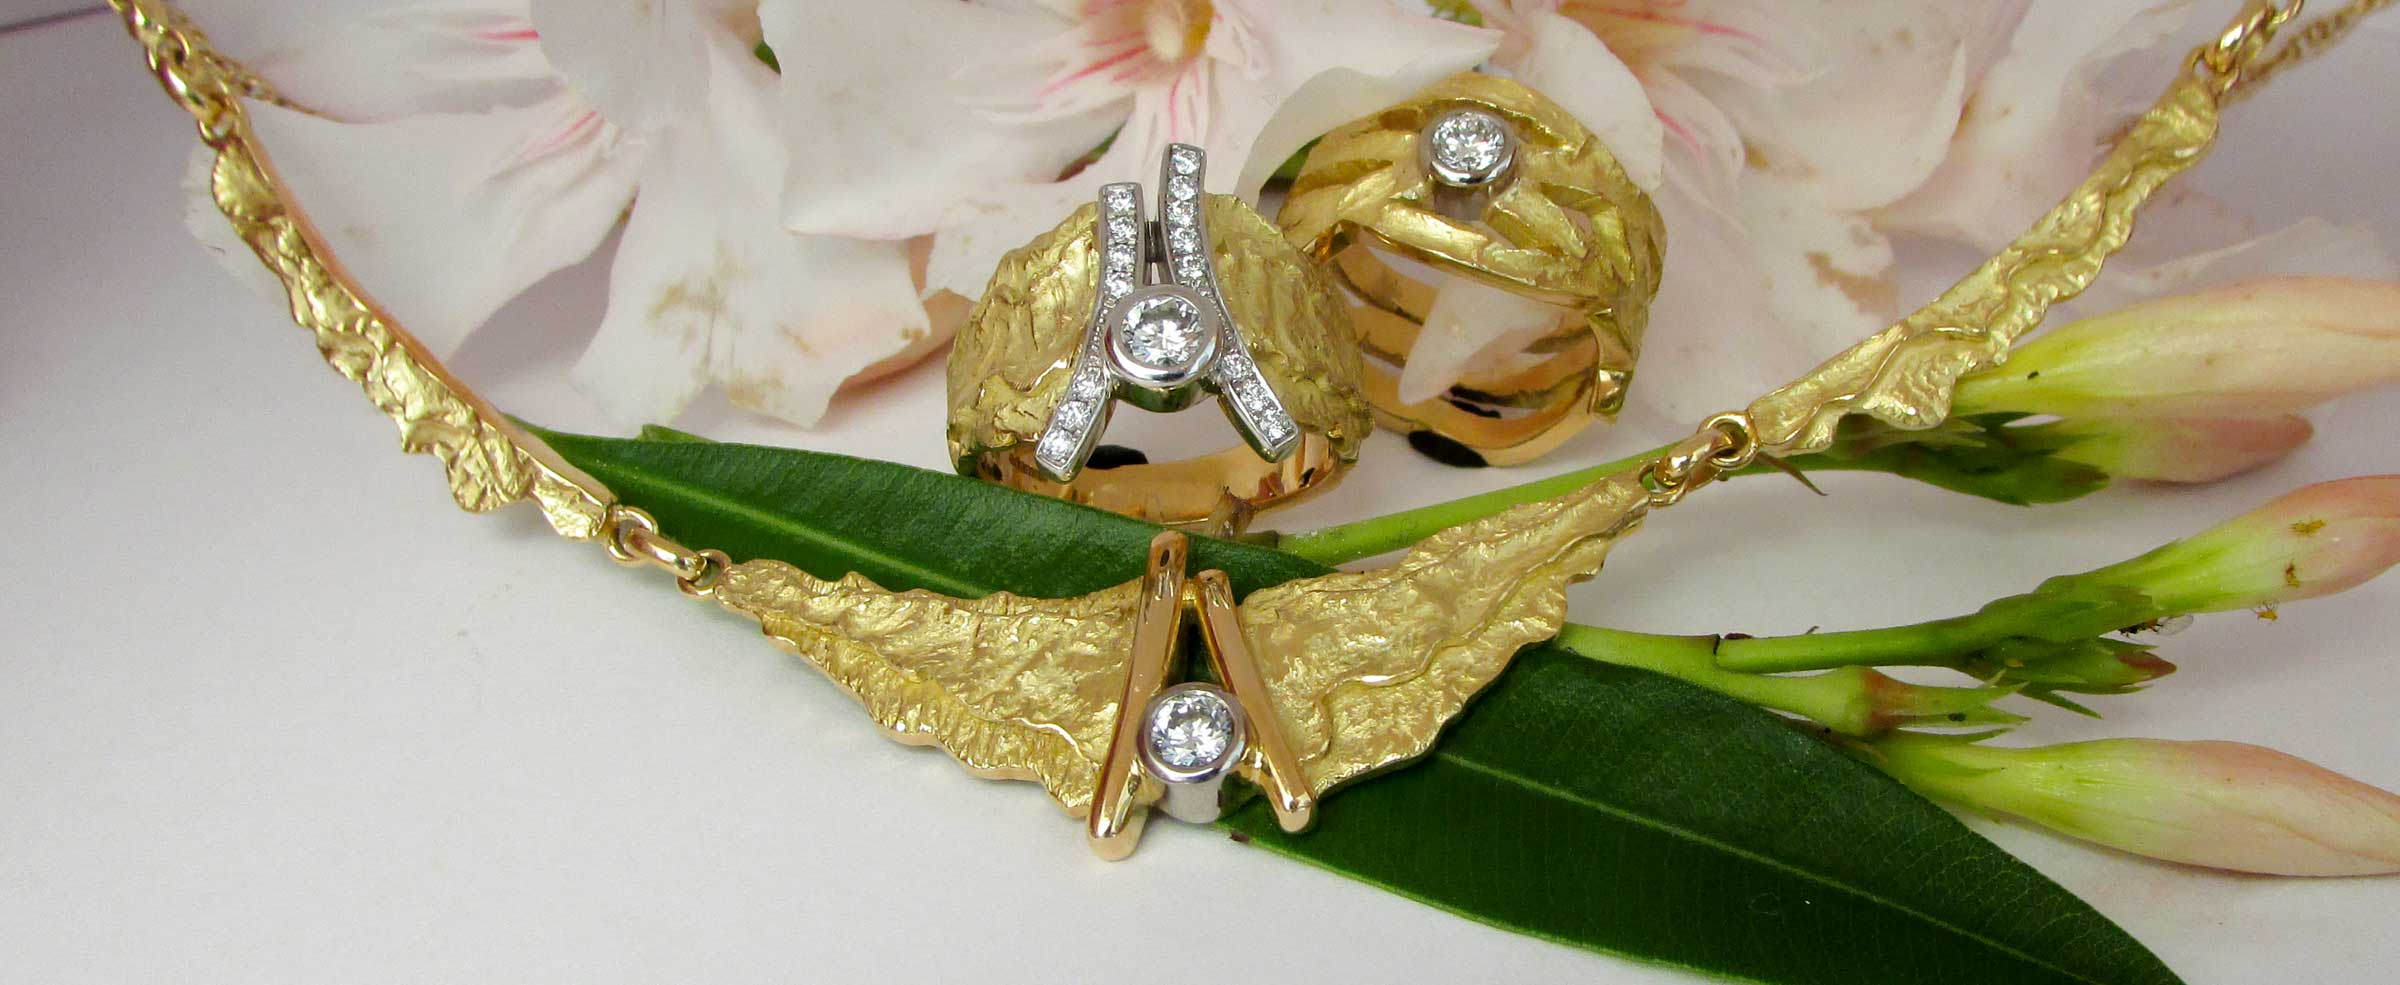 Rings and necklace with diamonds all hand made by adamas